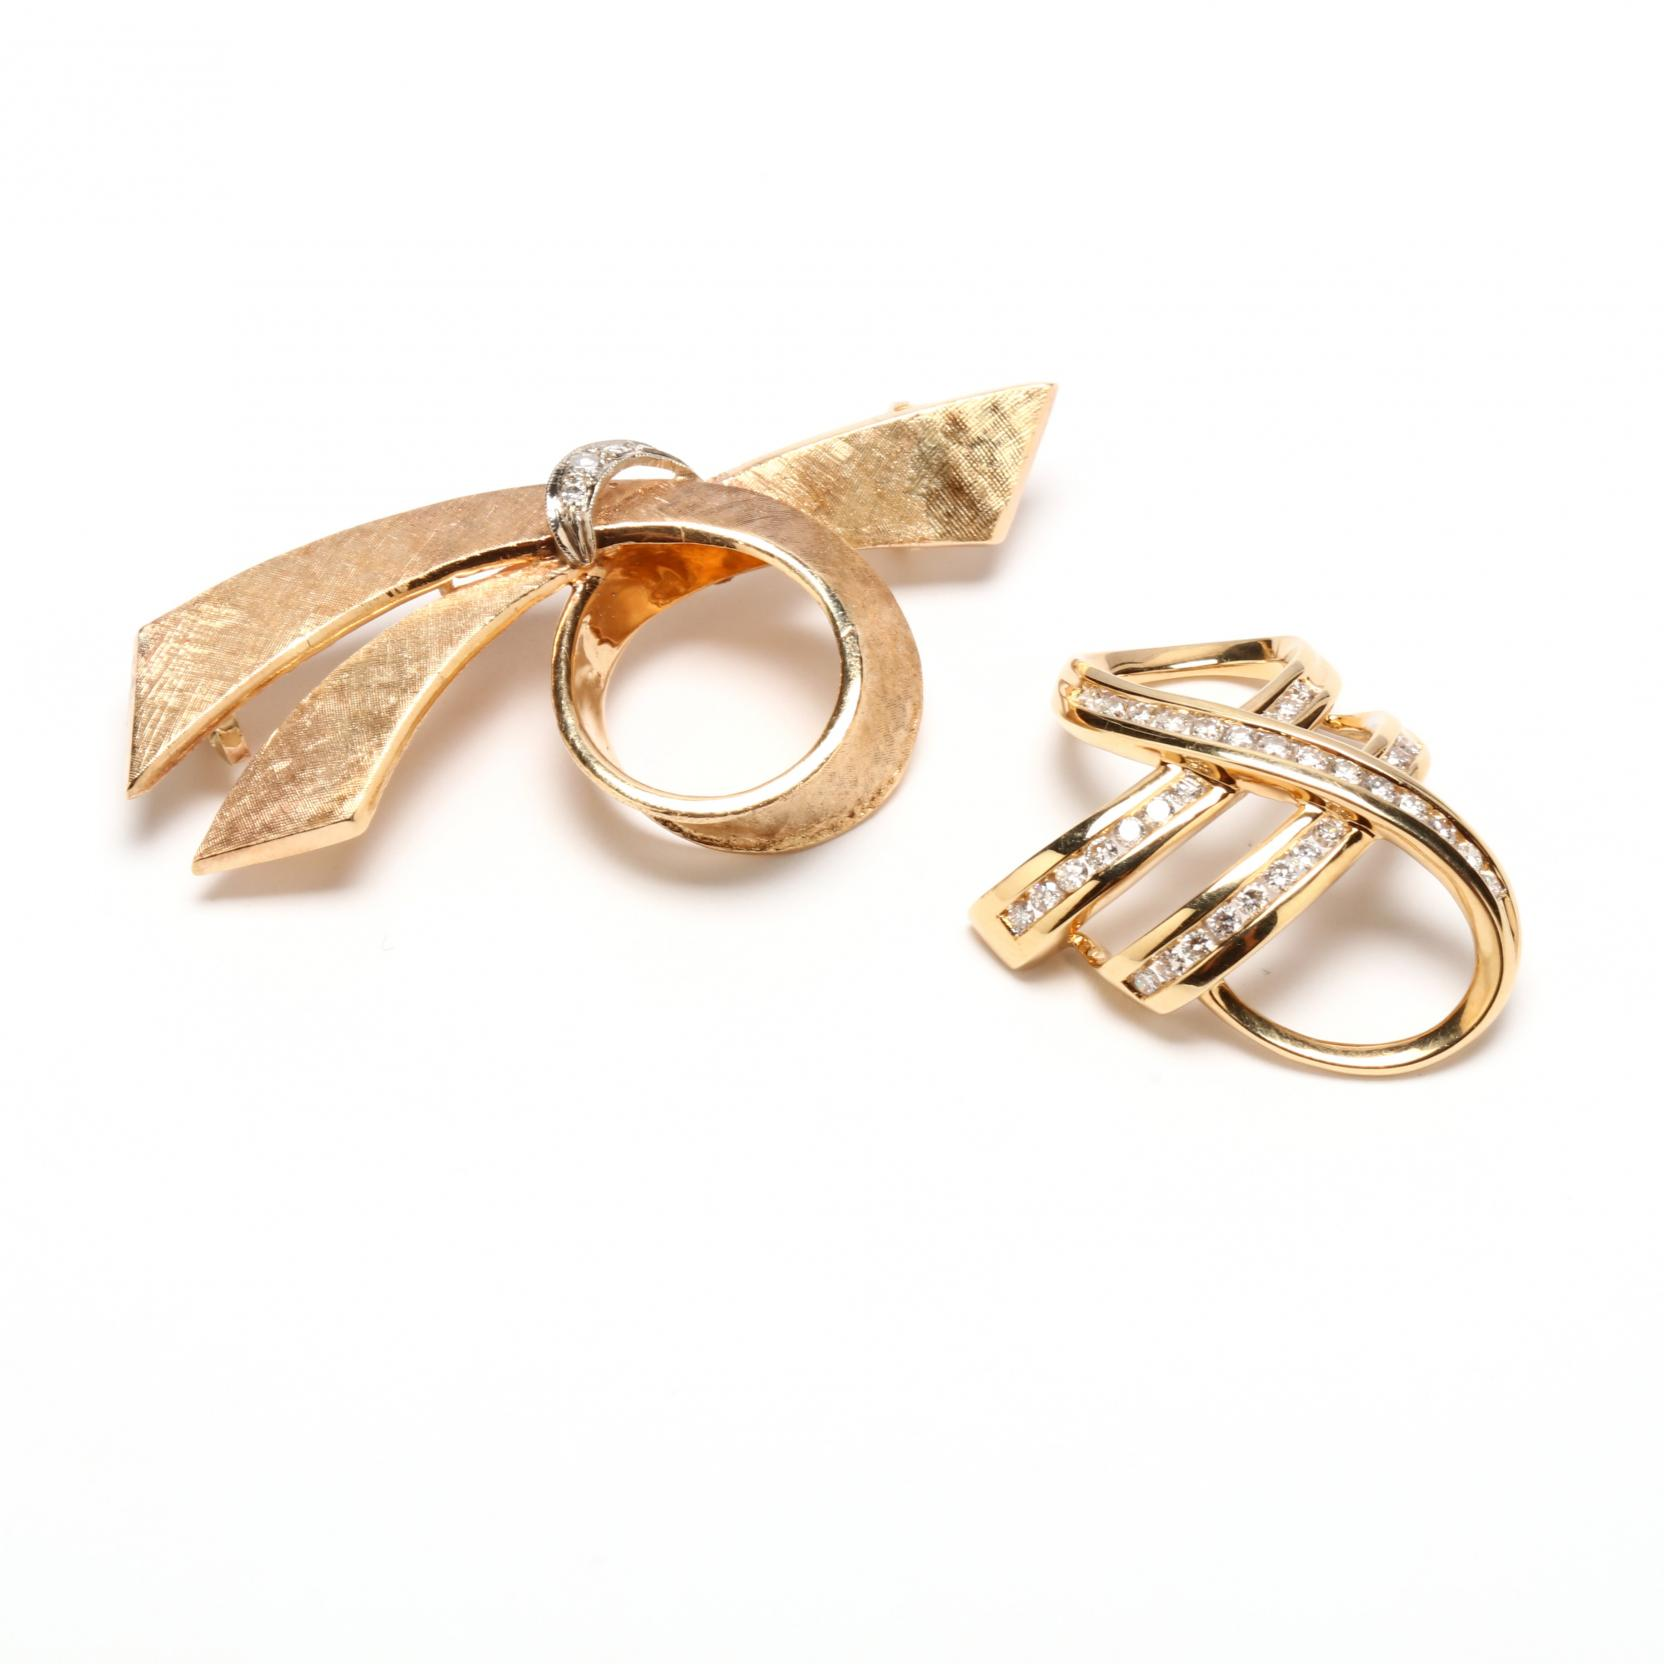 two-14kt-gold-and-diamond-enhancers-slides